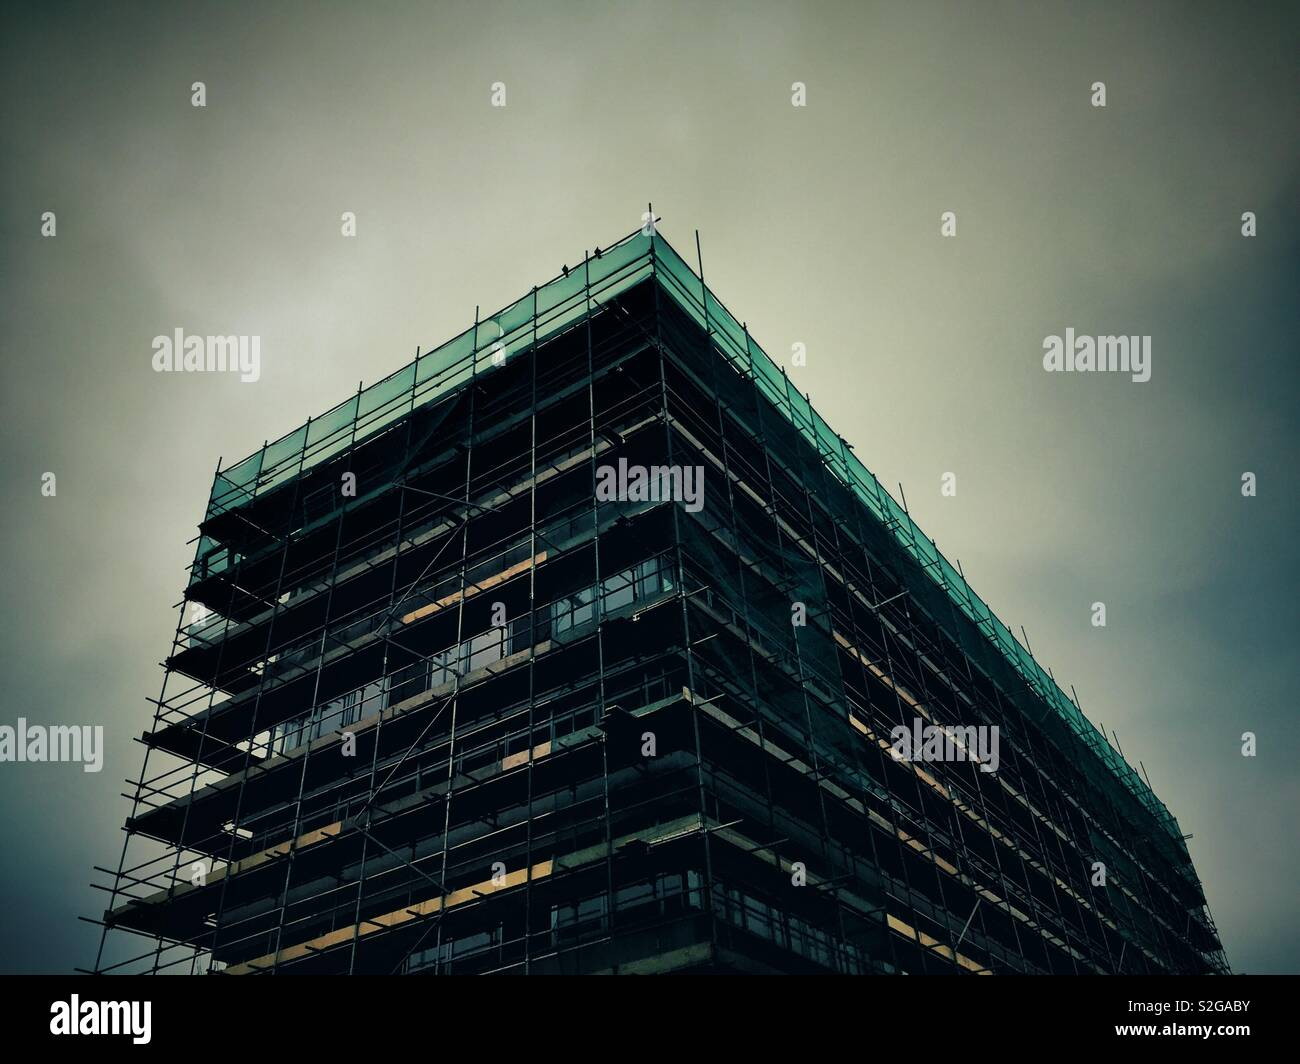 Multi-story building surrounded by scaffolding. - Stock Image